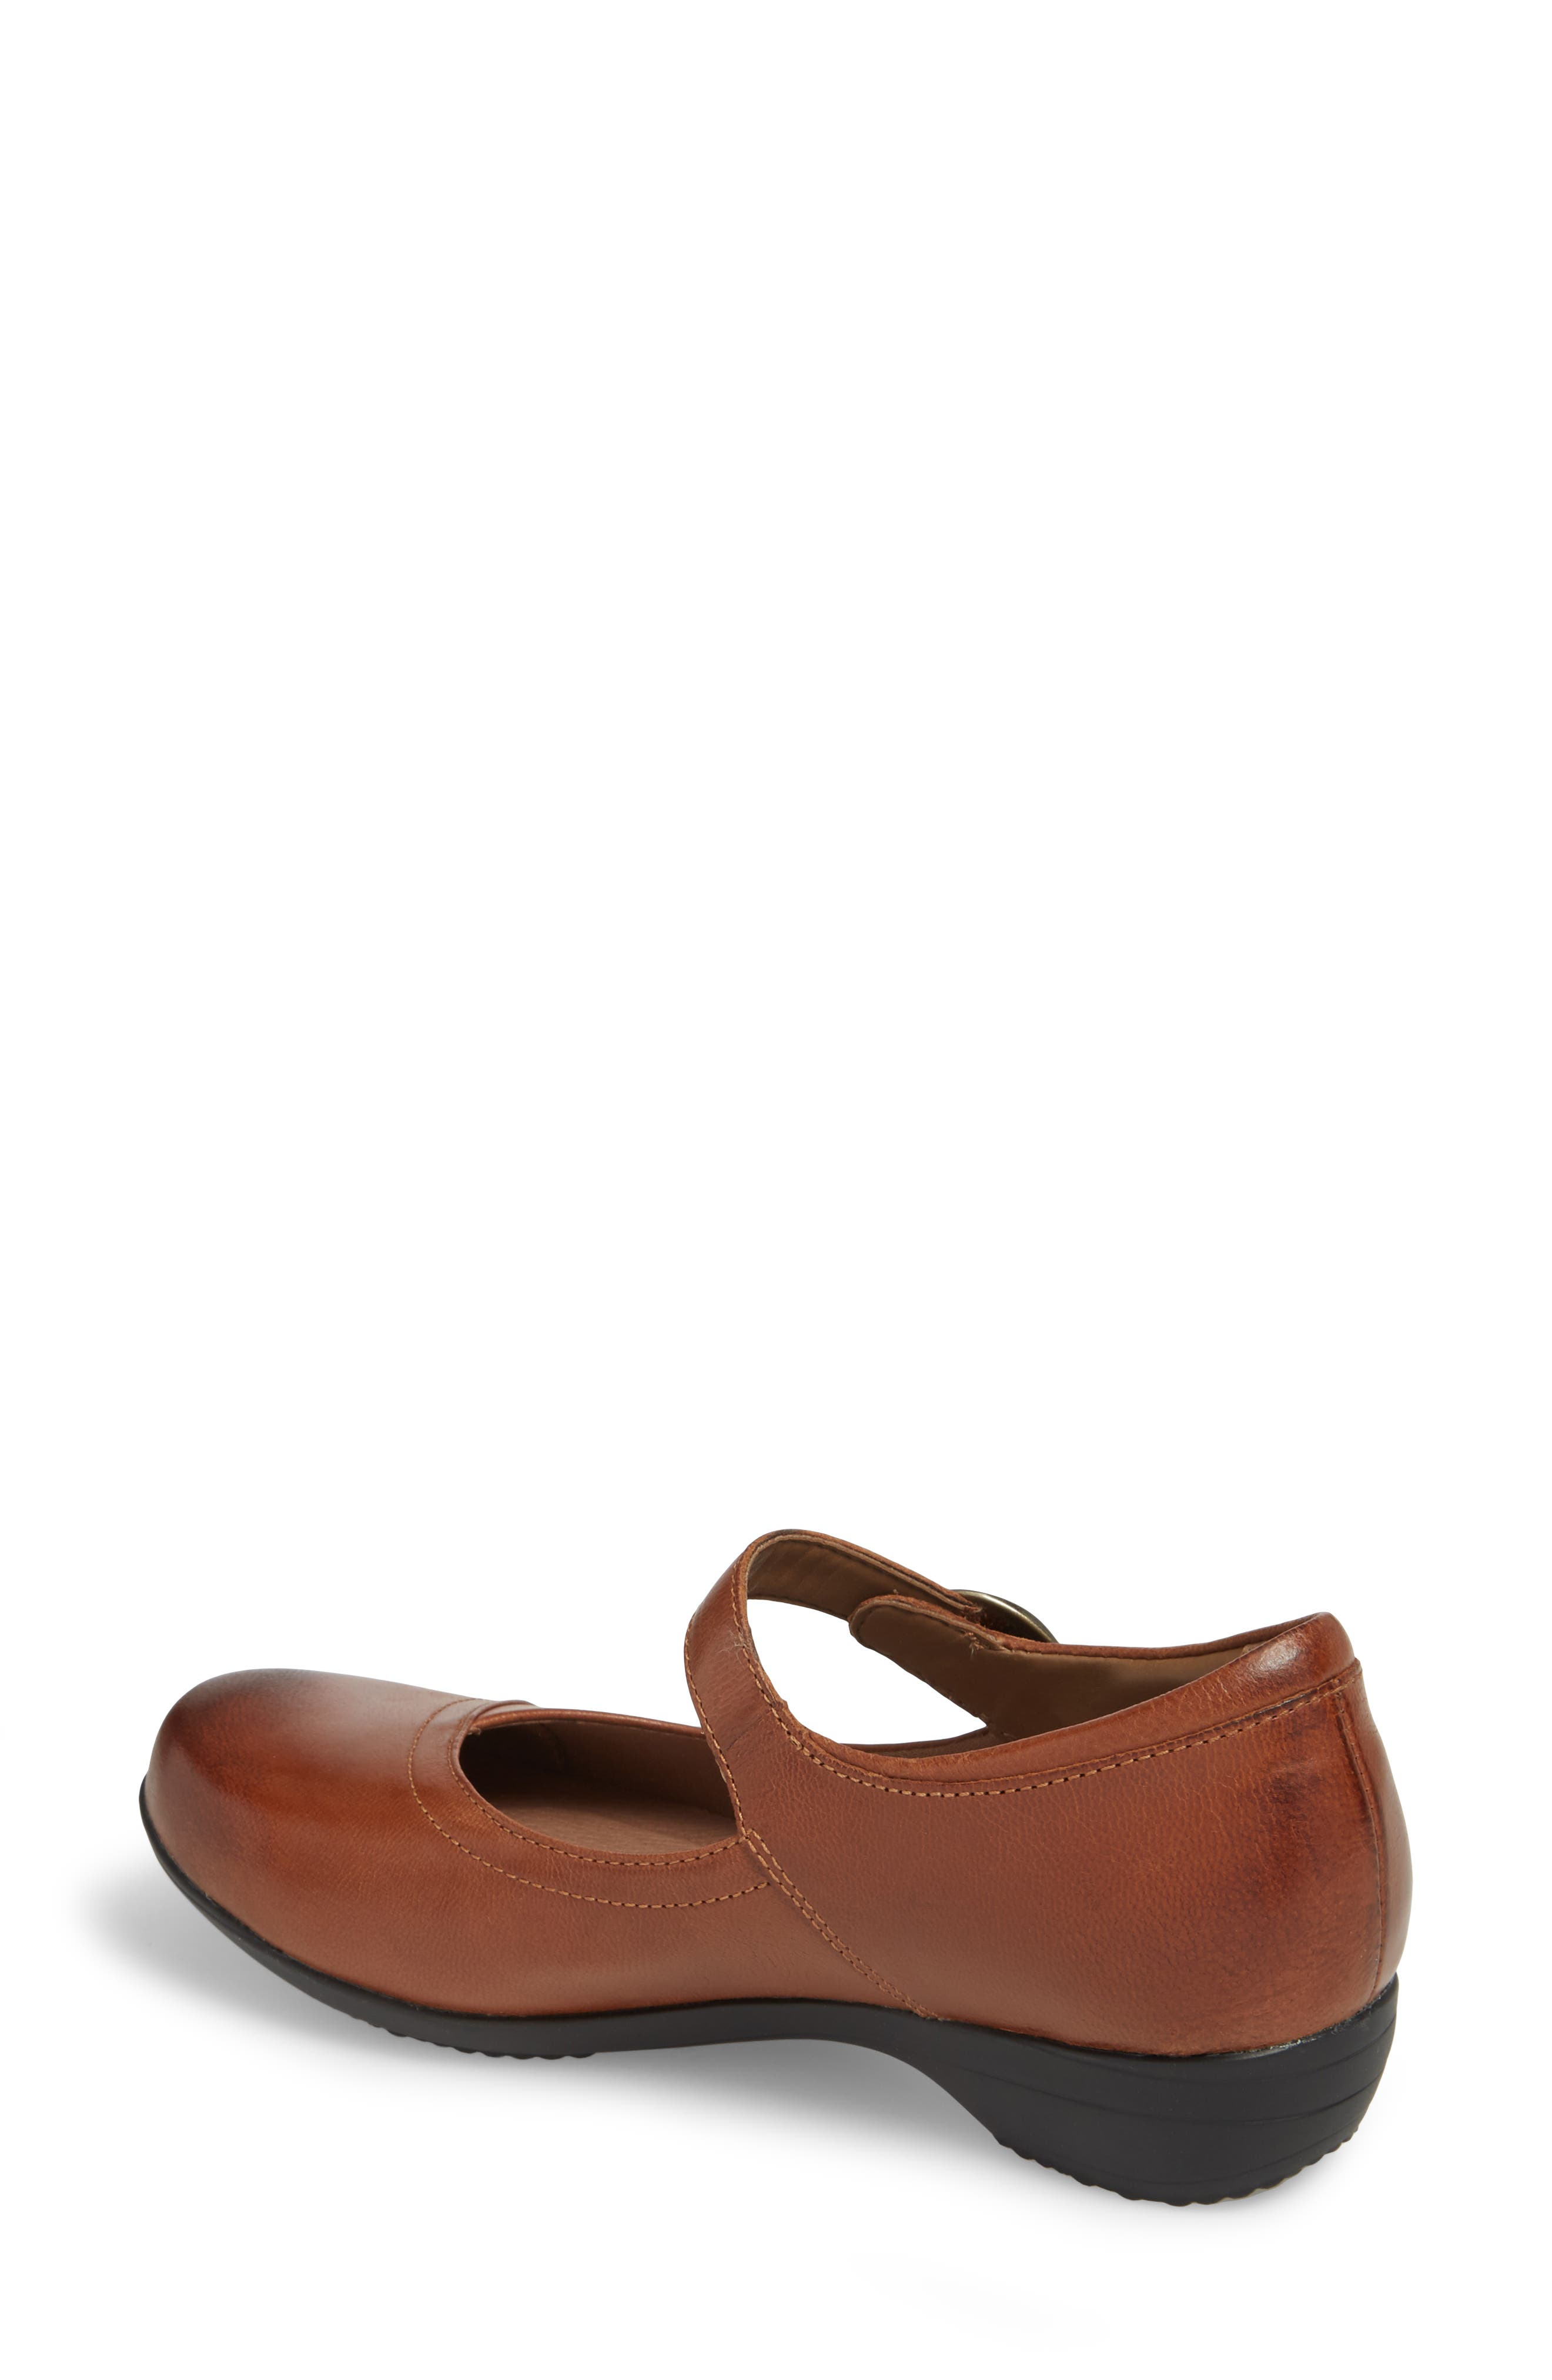 Fawna Mary Jane Flat,                             Alternate thumbnail 2, color,                             CHESTNUT LEATHER